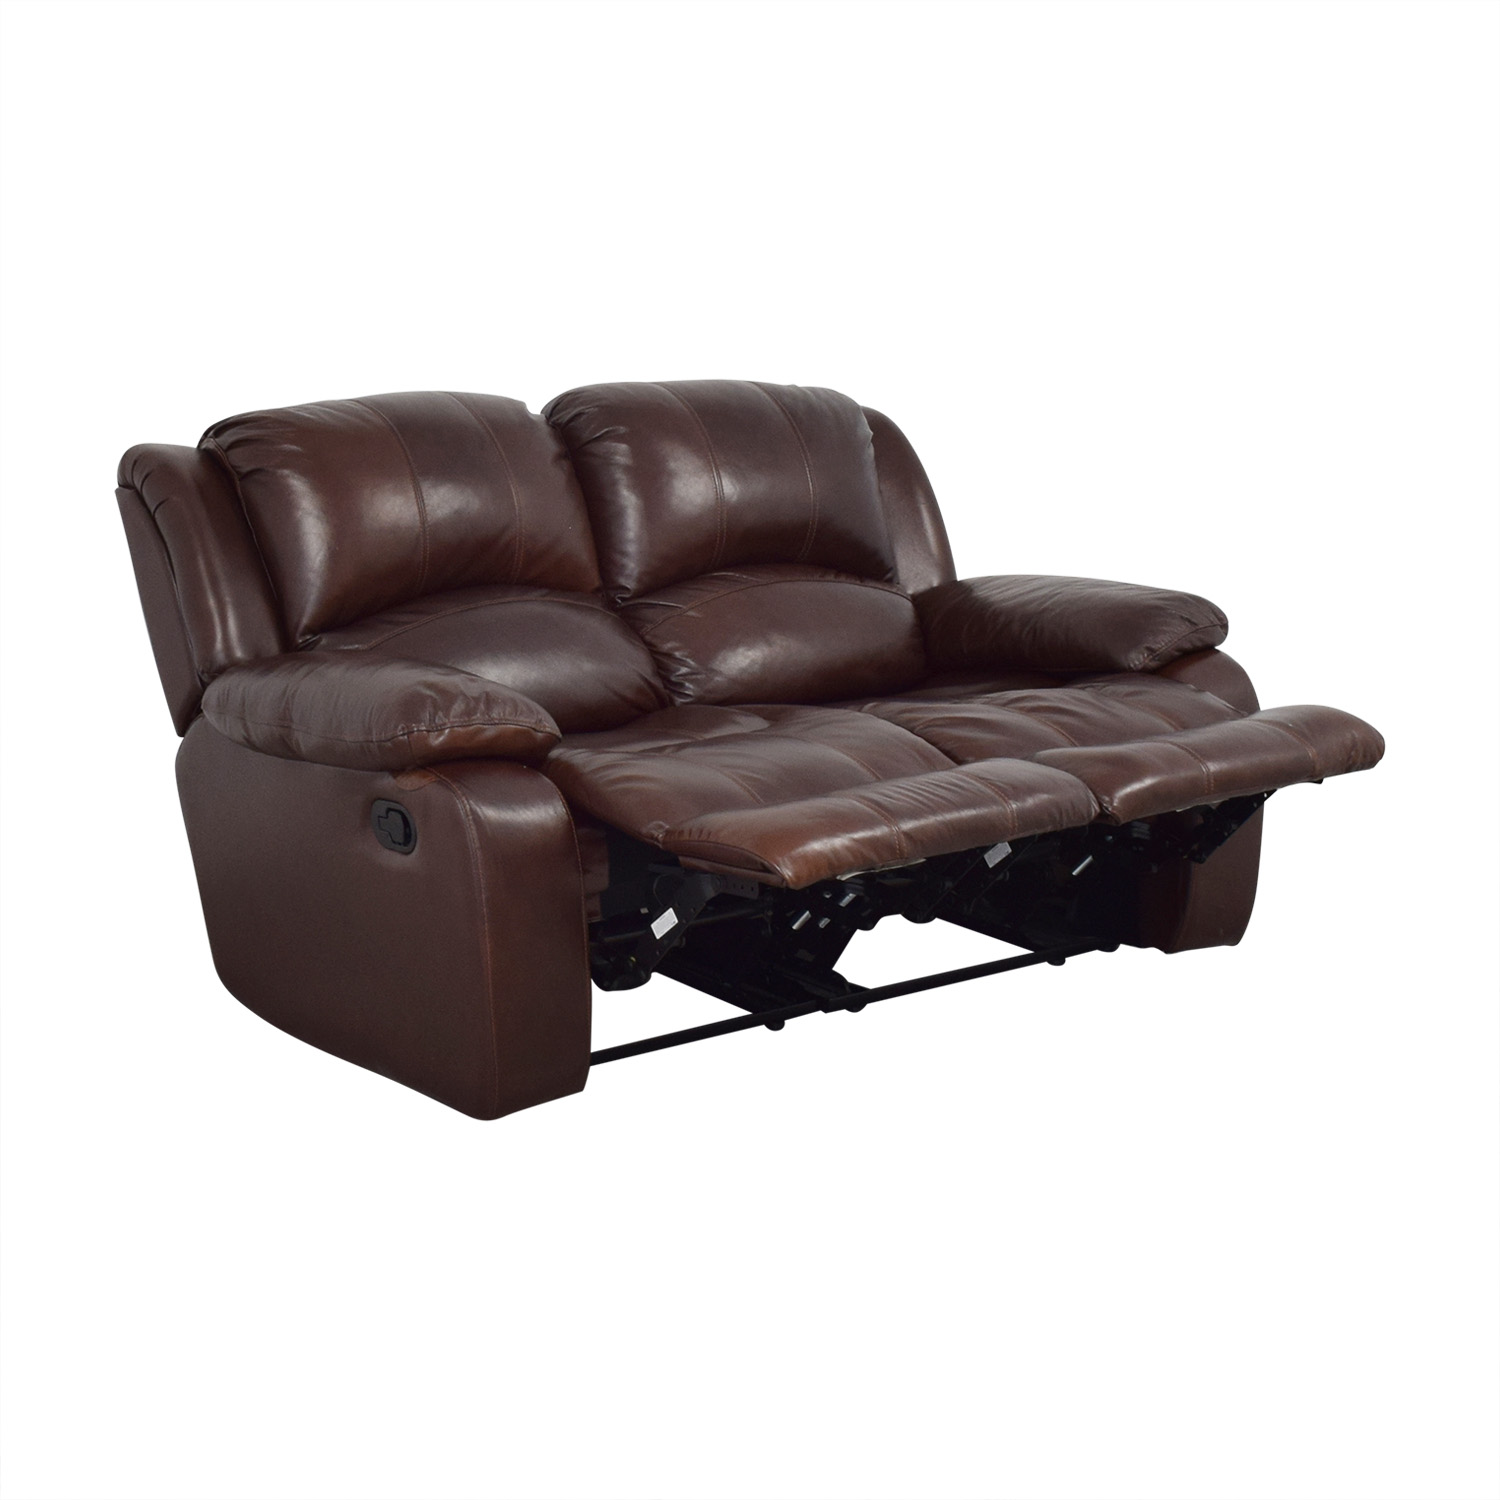 Raymour & Flanigan Raymour & Flanigan Dual Reclining Loveseat used